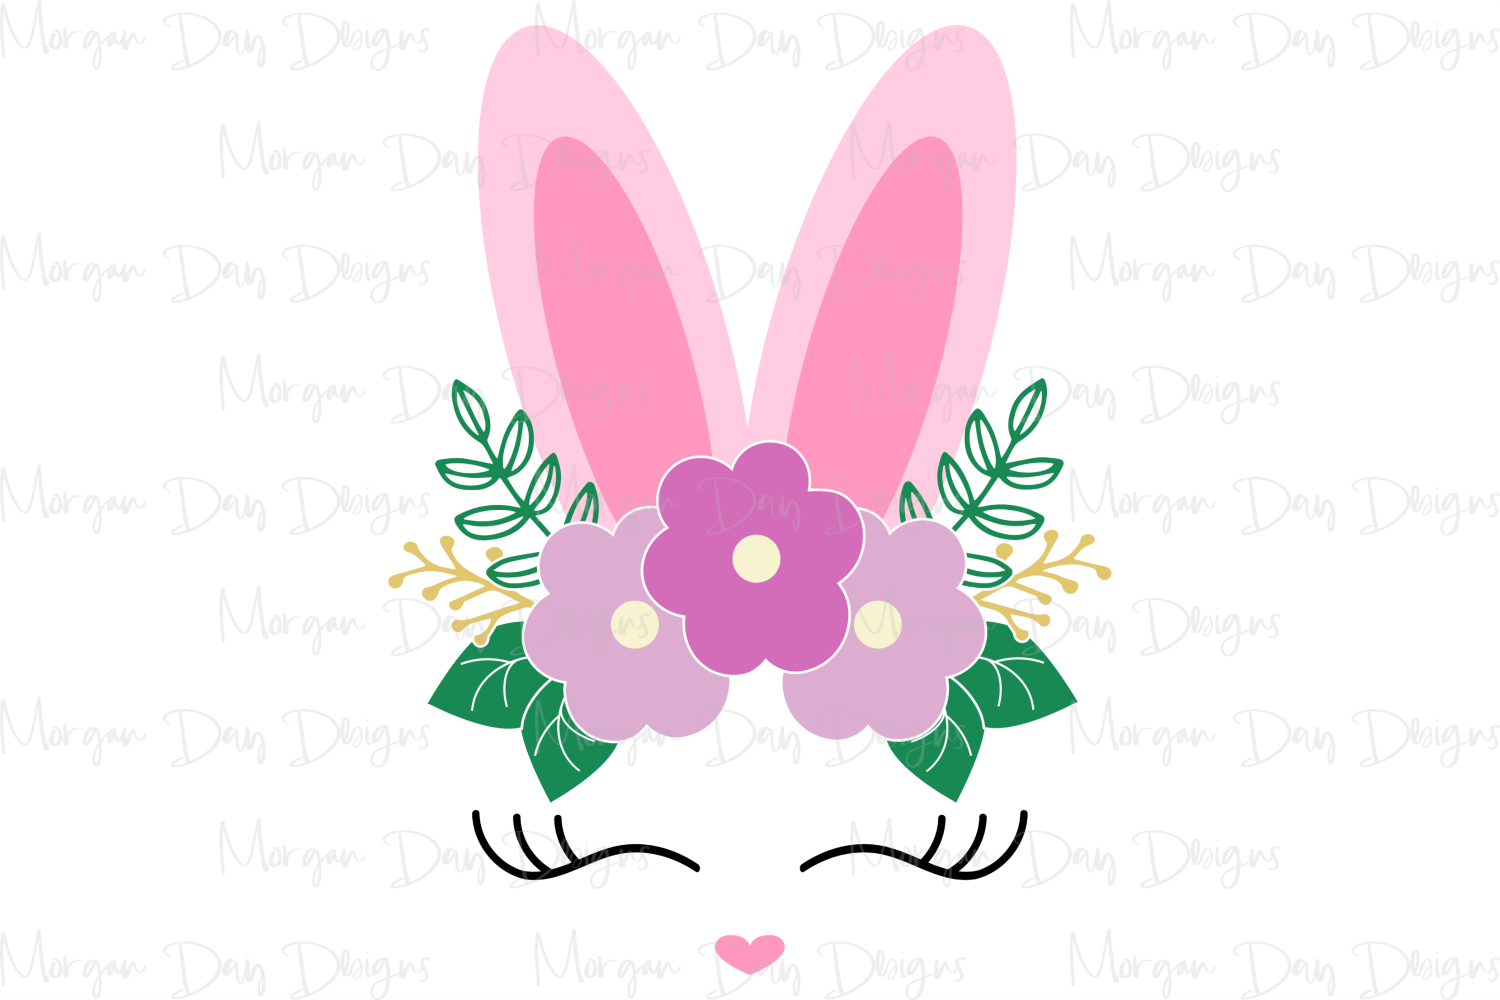 Floral Bunny Face - Easter SVG, DXF, AI, EPS, PNG, JPEG example image 2